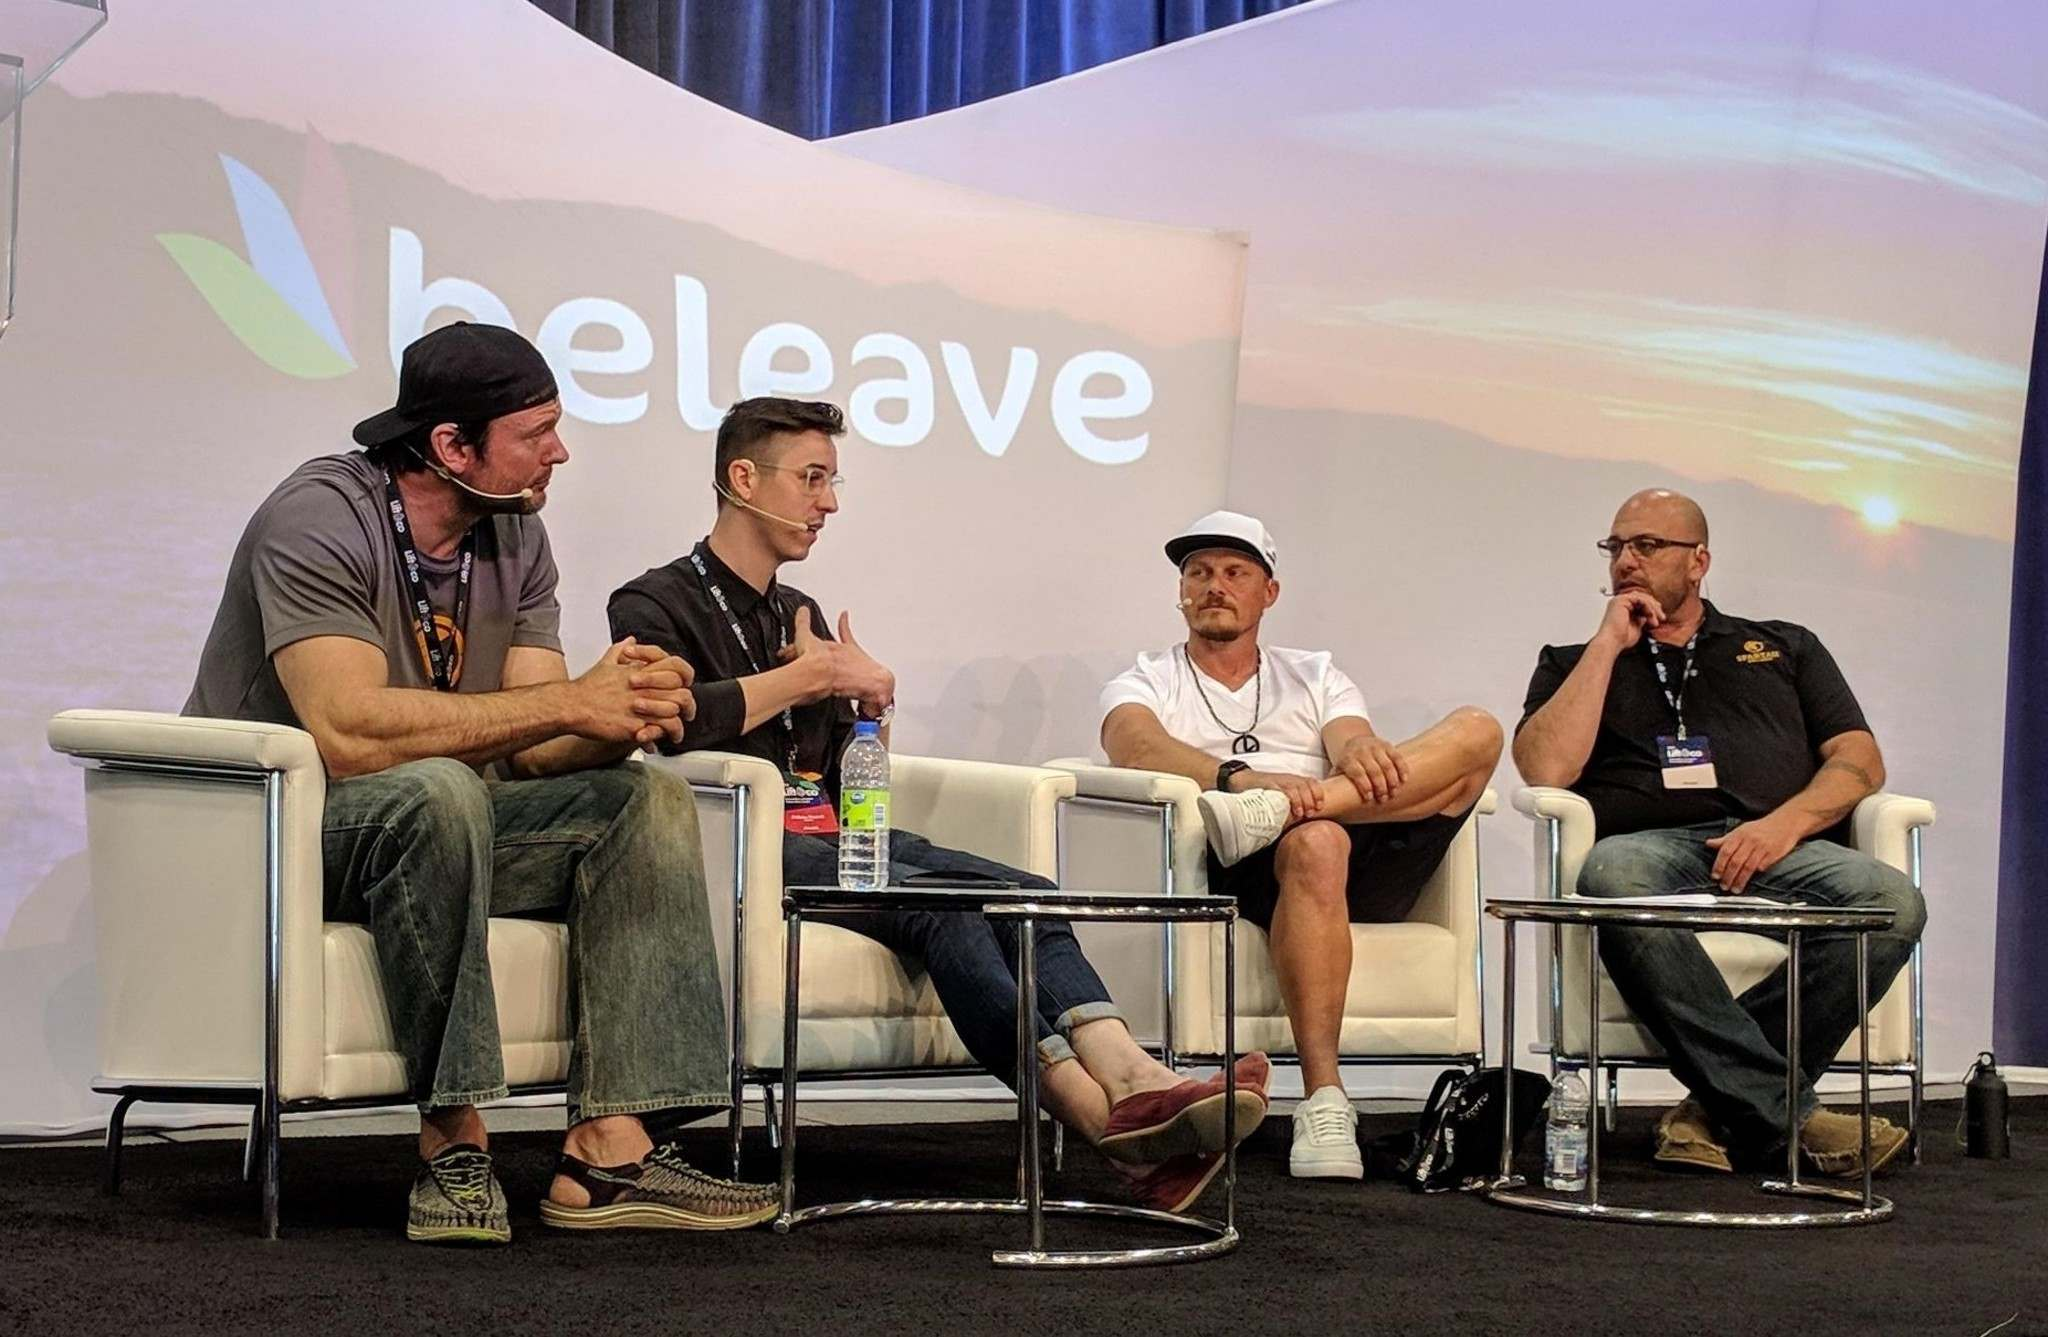 Professional arm-wrestler Devon Larratt (left) joined former competitive cyclist Philippe D&#233;pault (second from right) and Ross Rebagliati for a panel discussion on &#39;Cannabis in Sport&#39; during the Lift &amp; Co. cannabis expo in Toronto. (Solomon Israel/The Leaf News)</p>